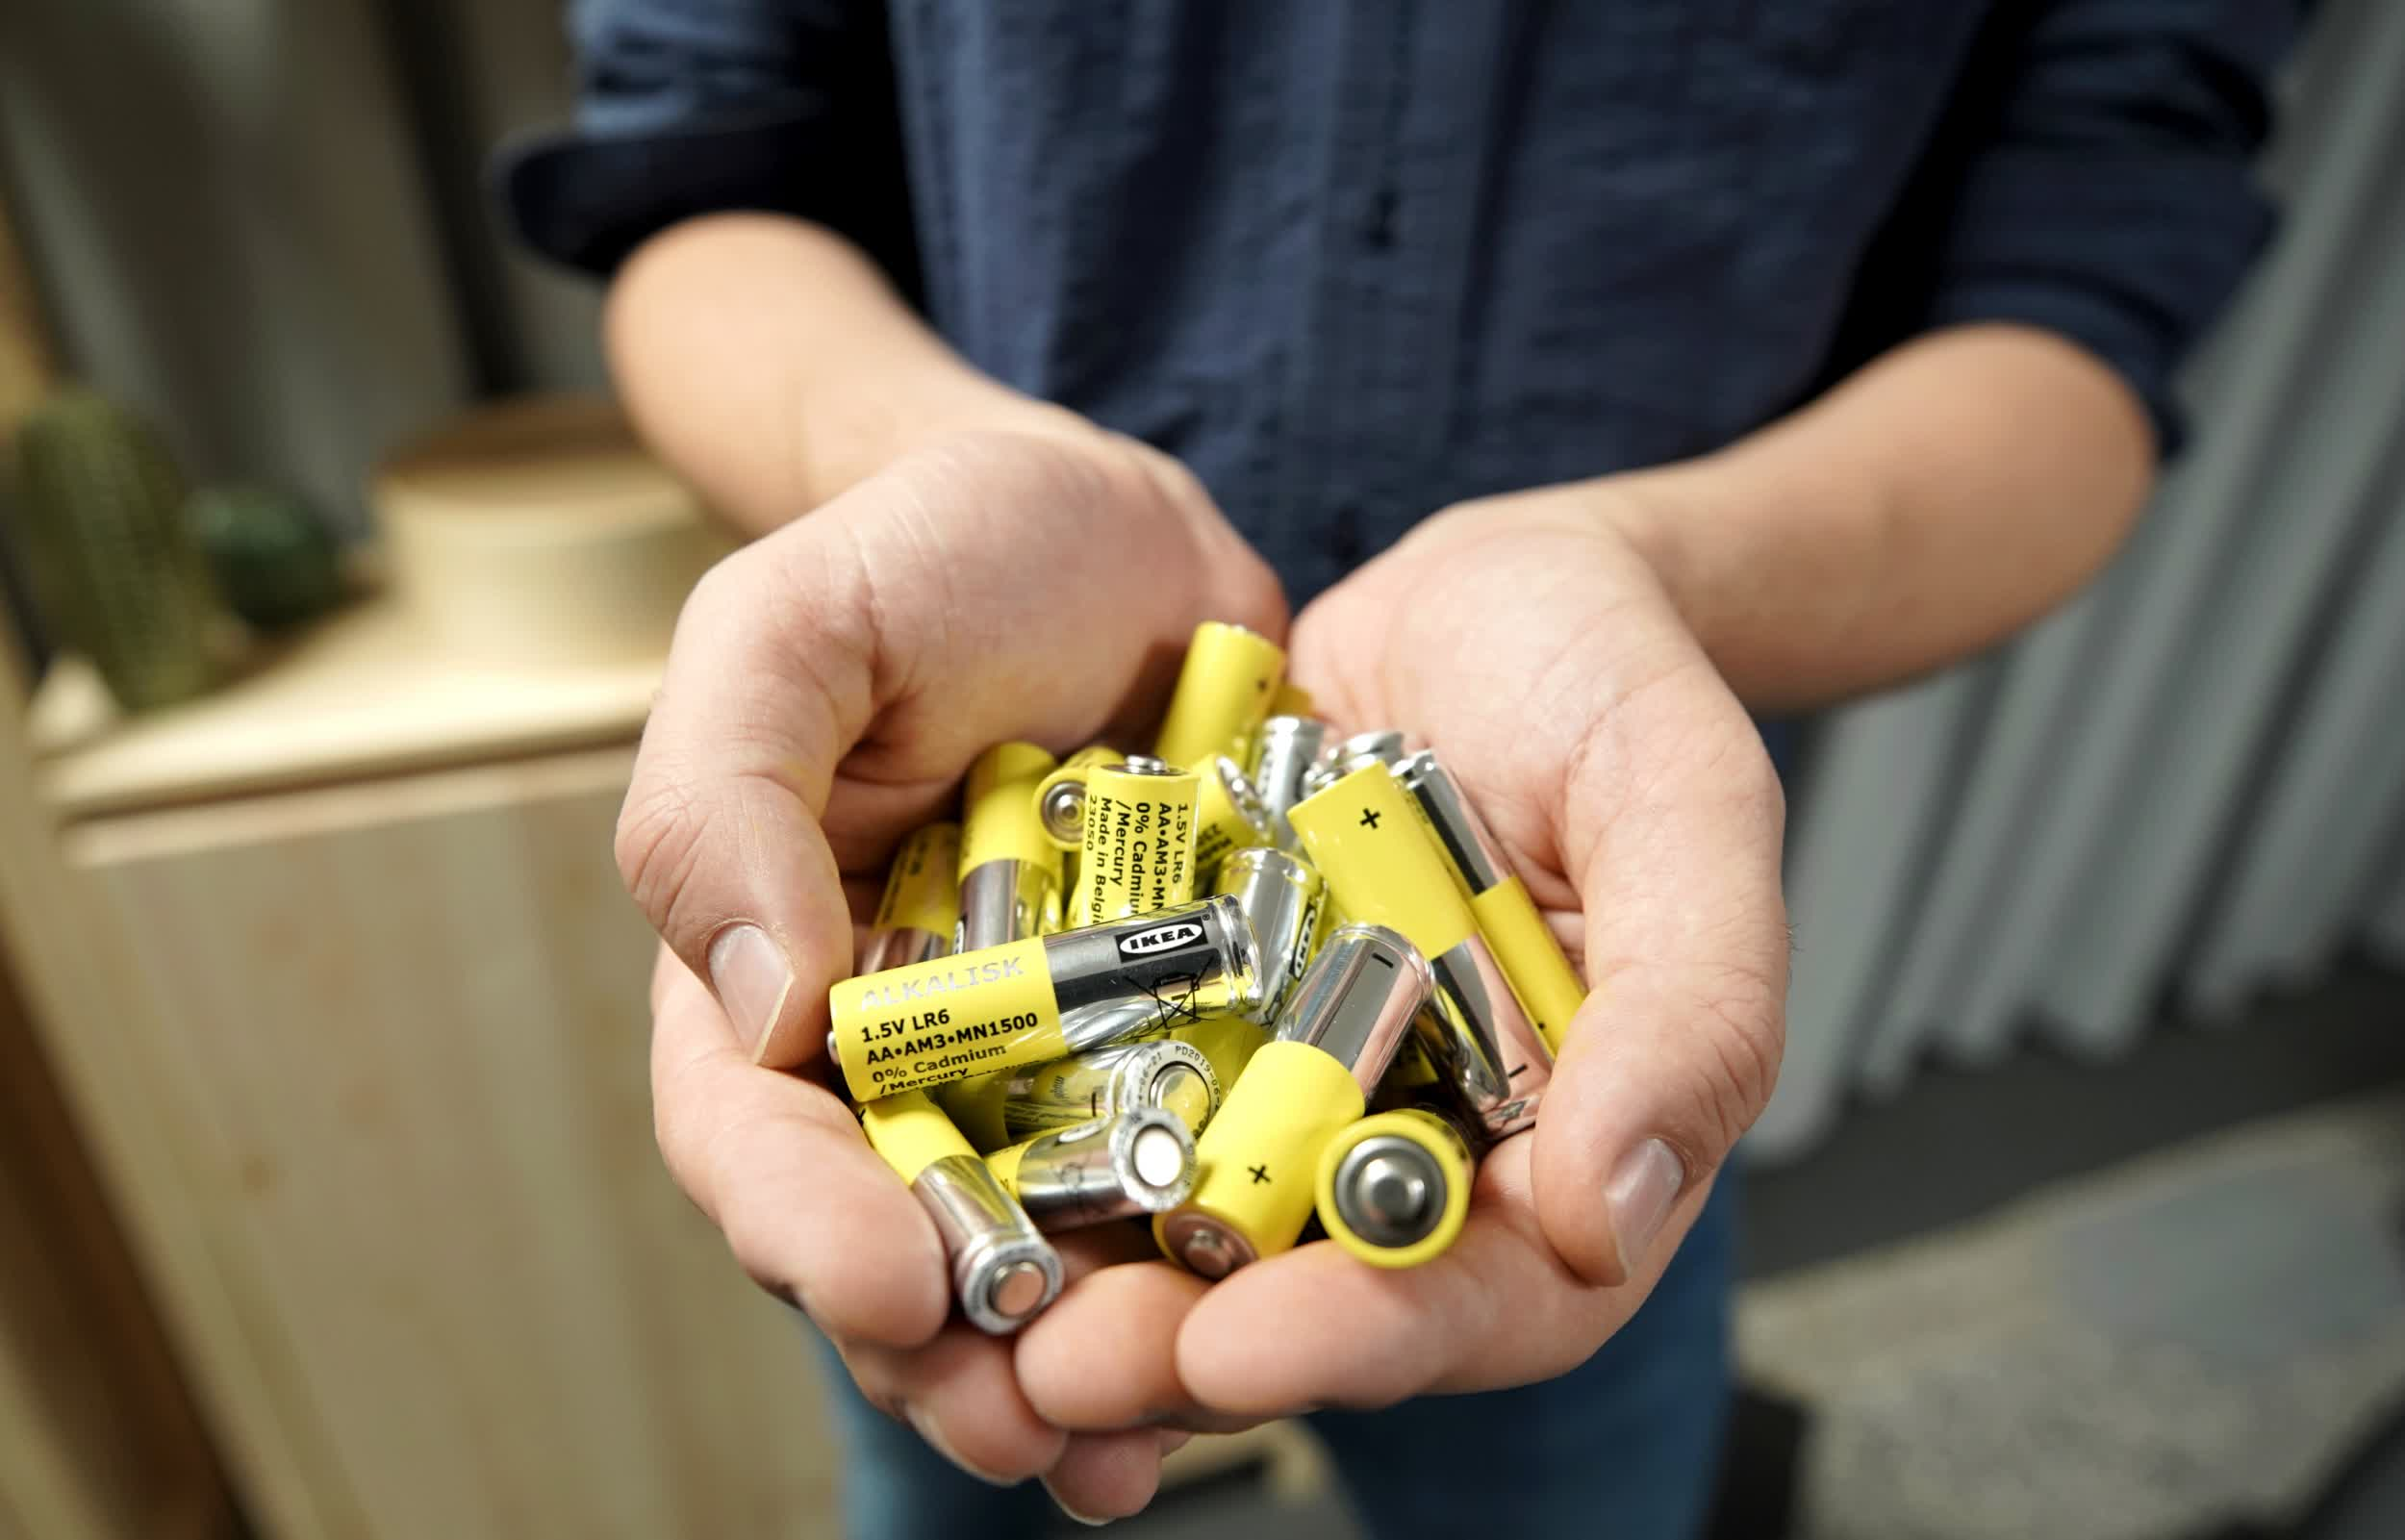 Ikea, which sold 300 million alkaline batteries last year, will stop offering them in 2021